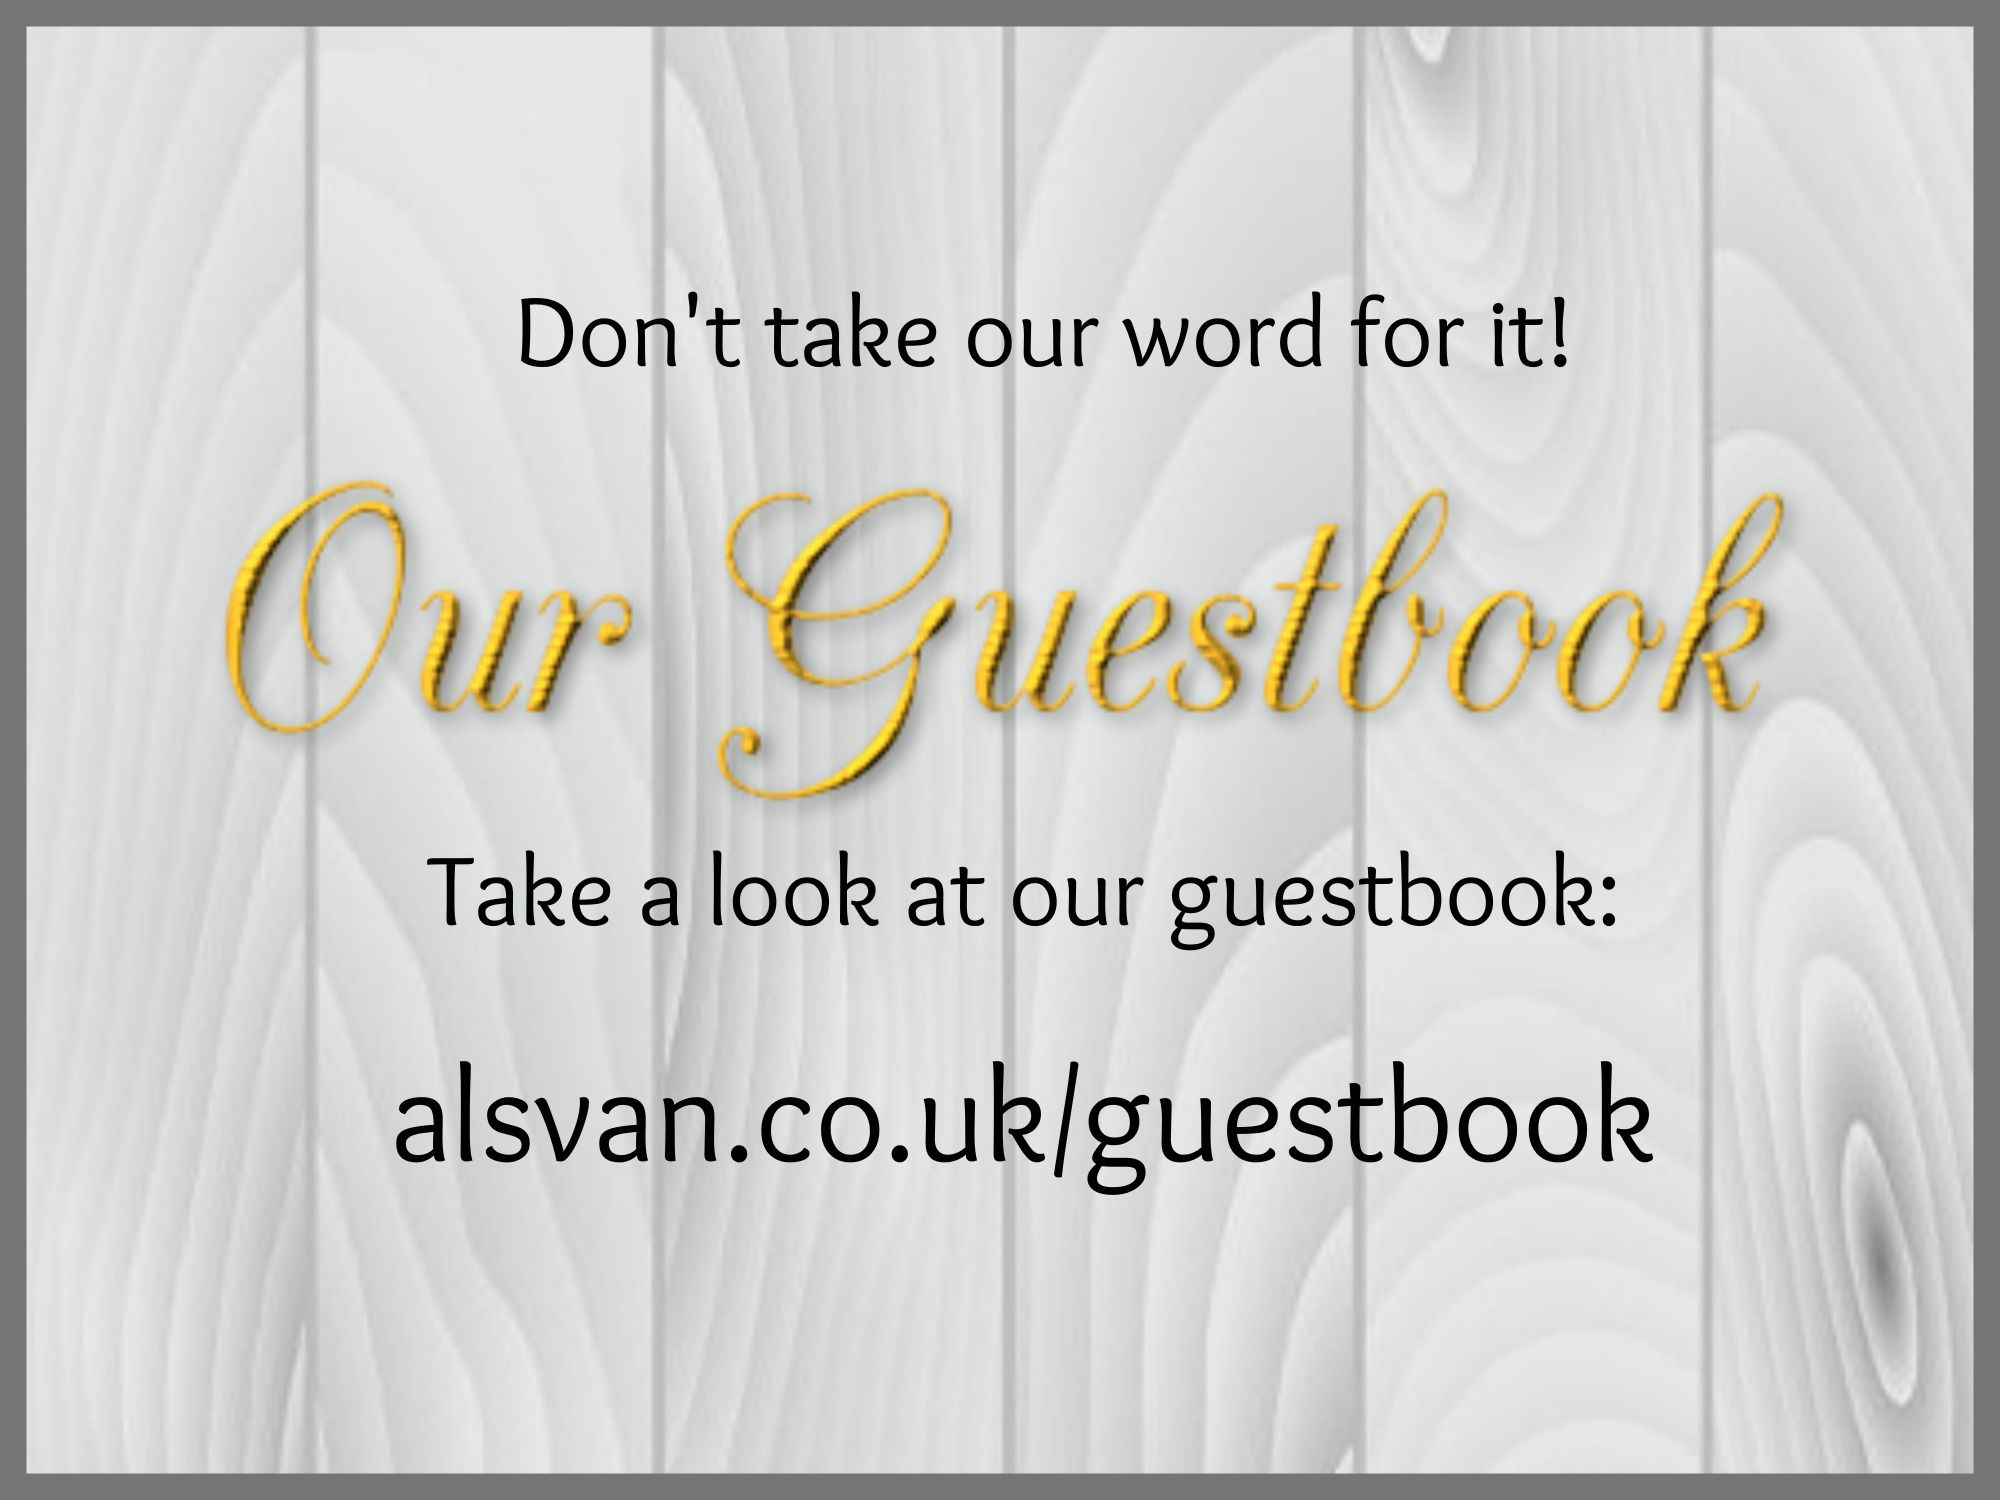 Take a look at the feedback for AVMR holidays